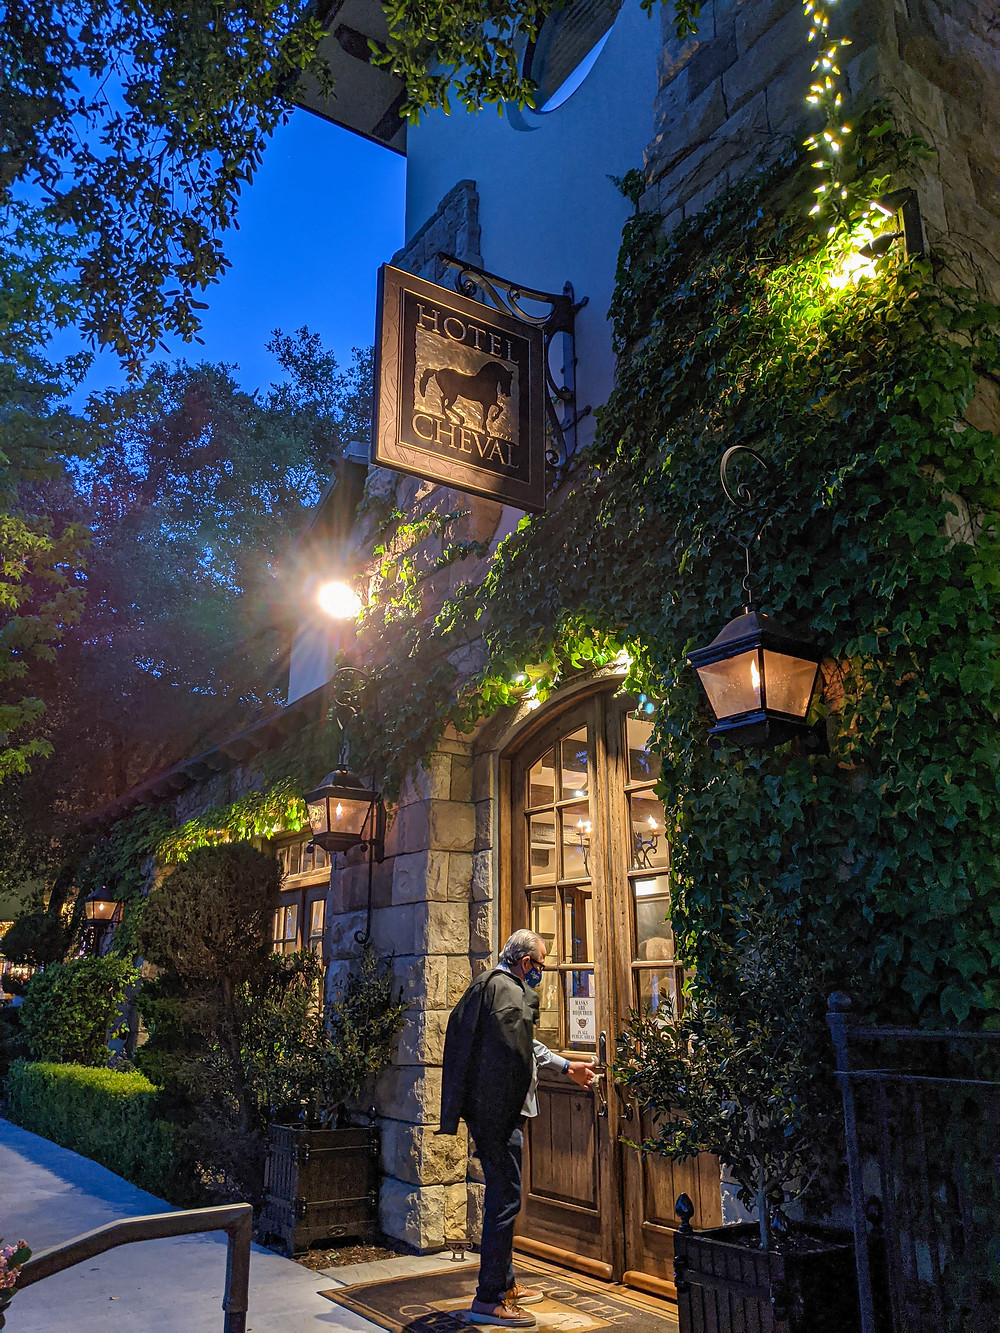 European ambience at Hotel Cheval in downtown Paso Robles